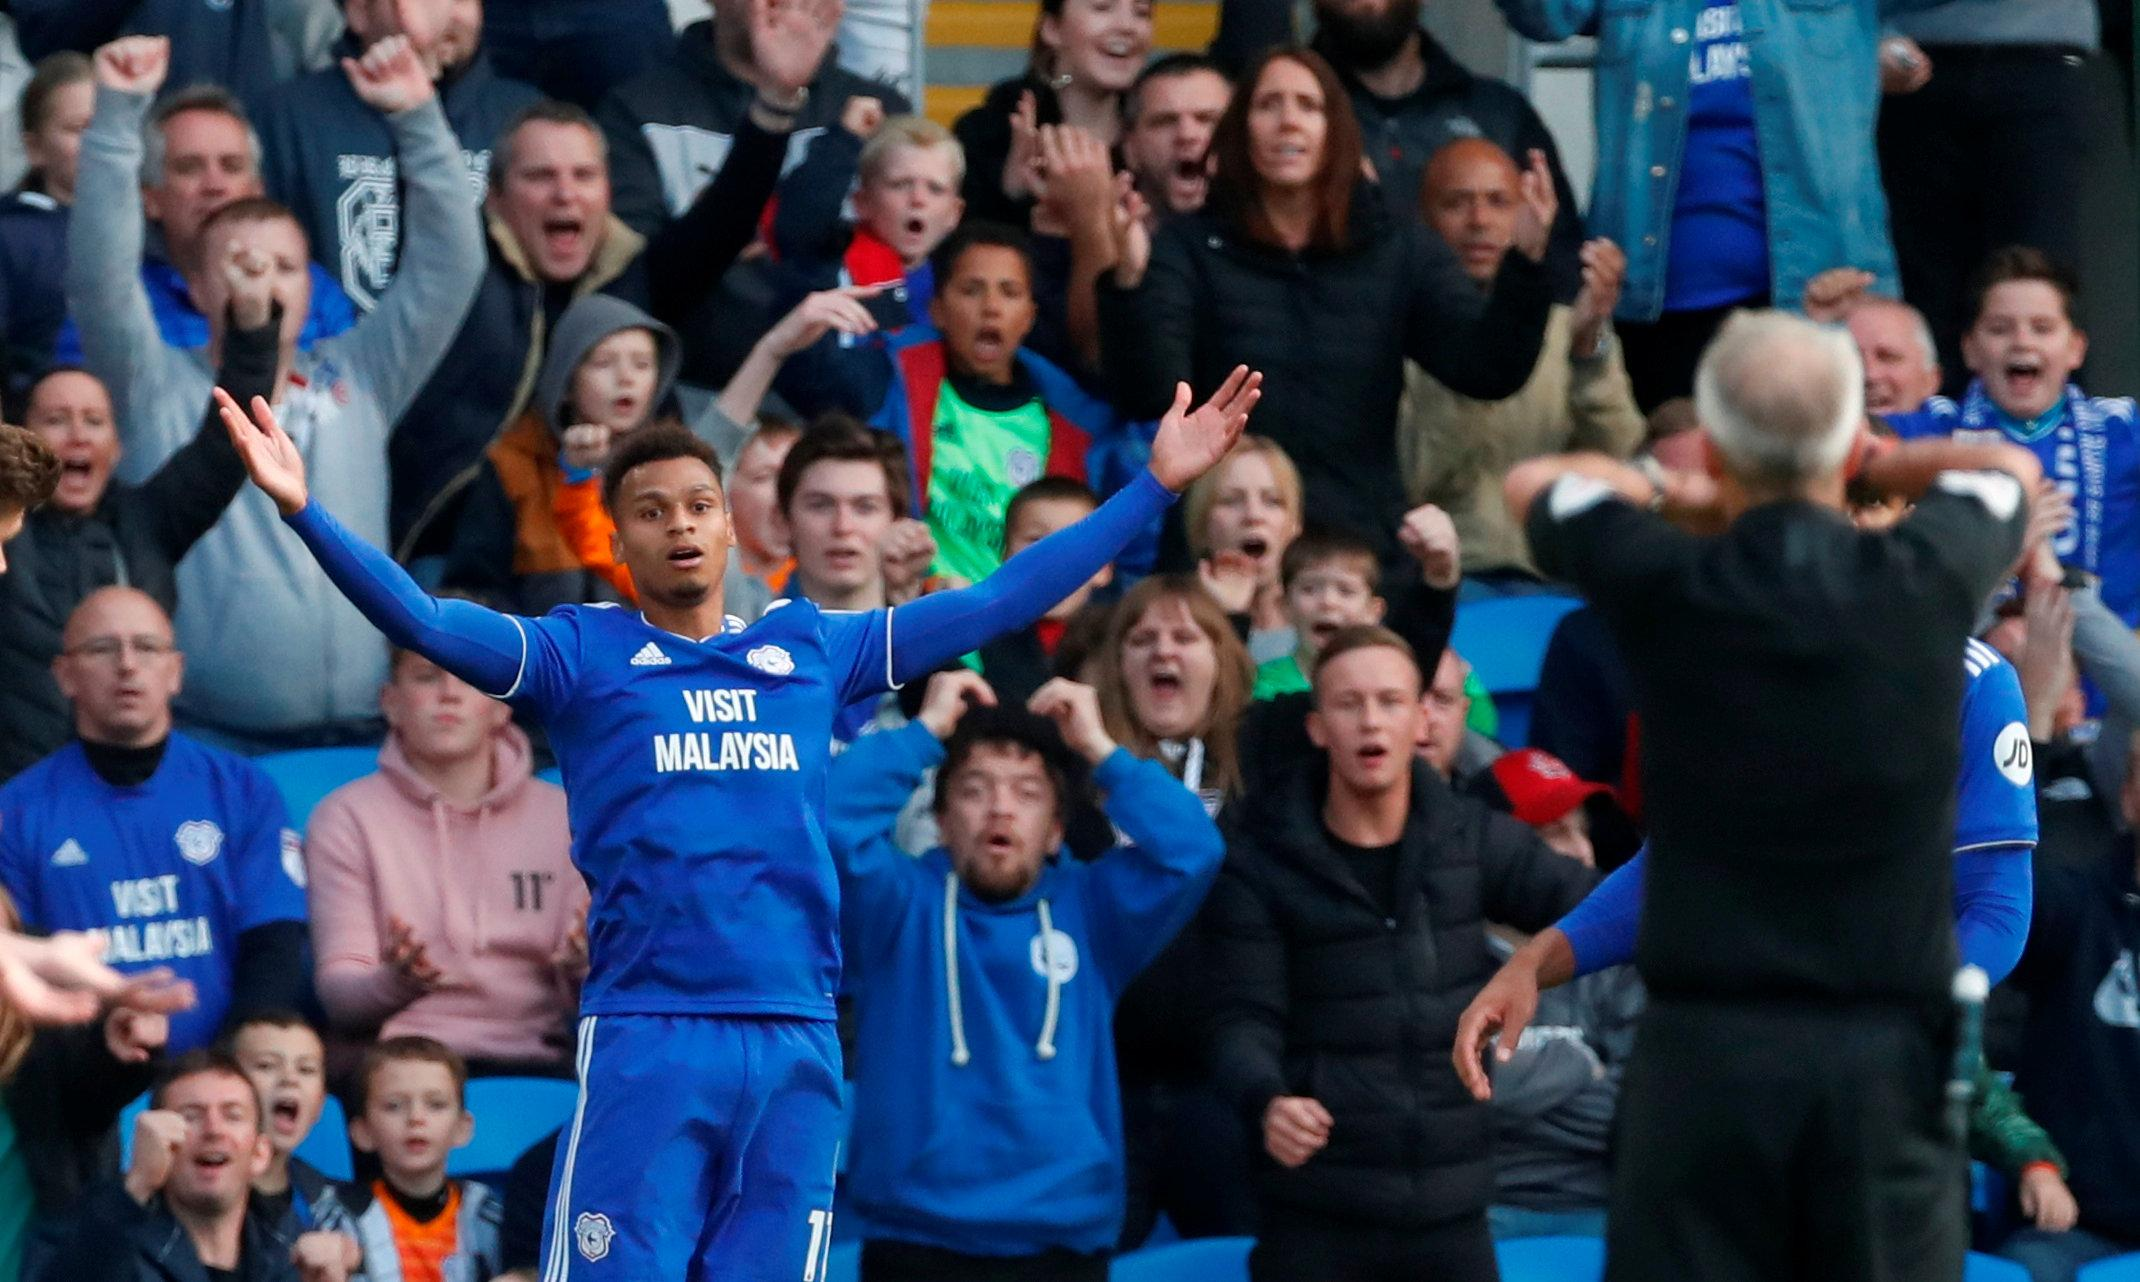 Cardiff's match with Burnley actually saw just 40 minutes and 50 seconds of action